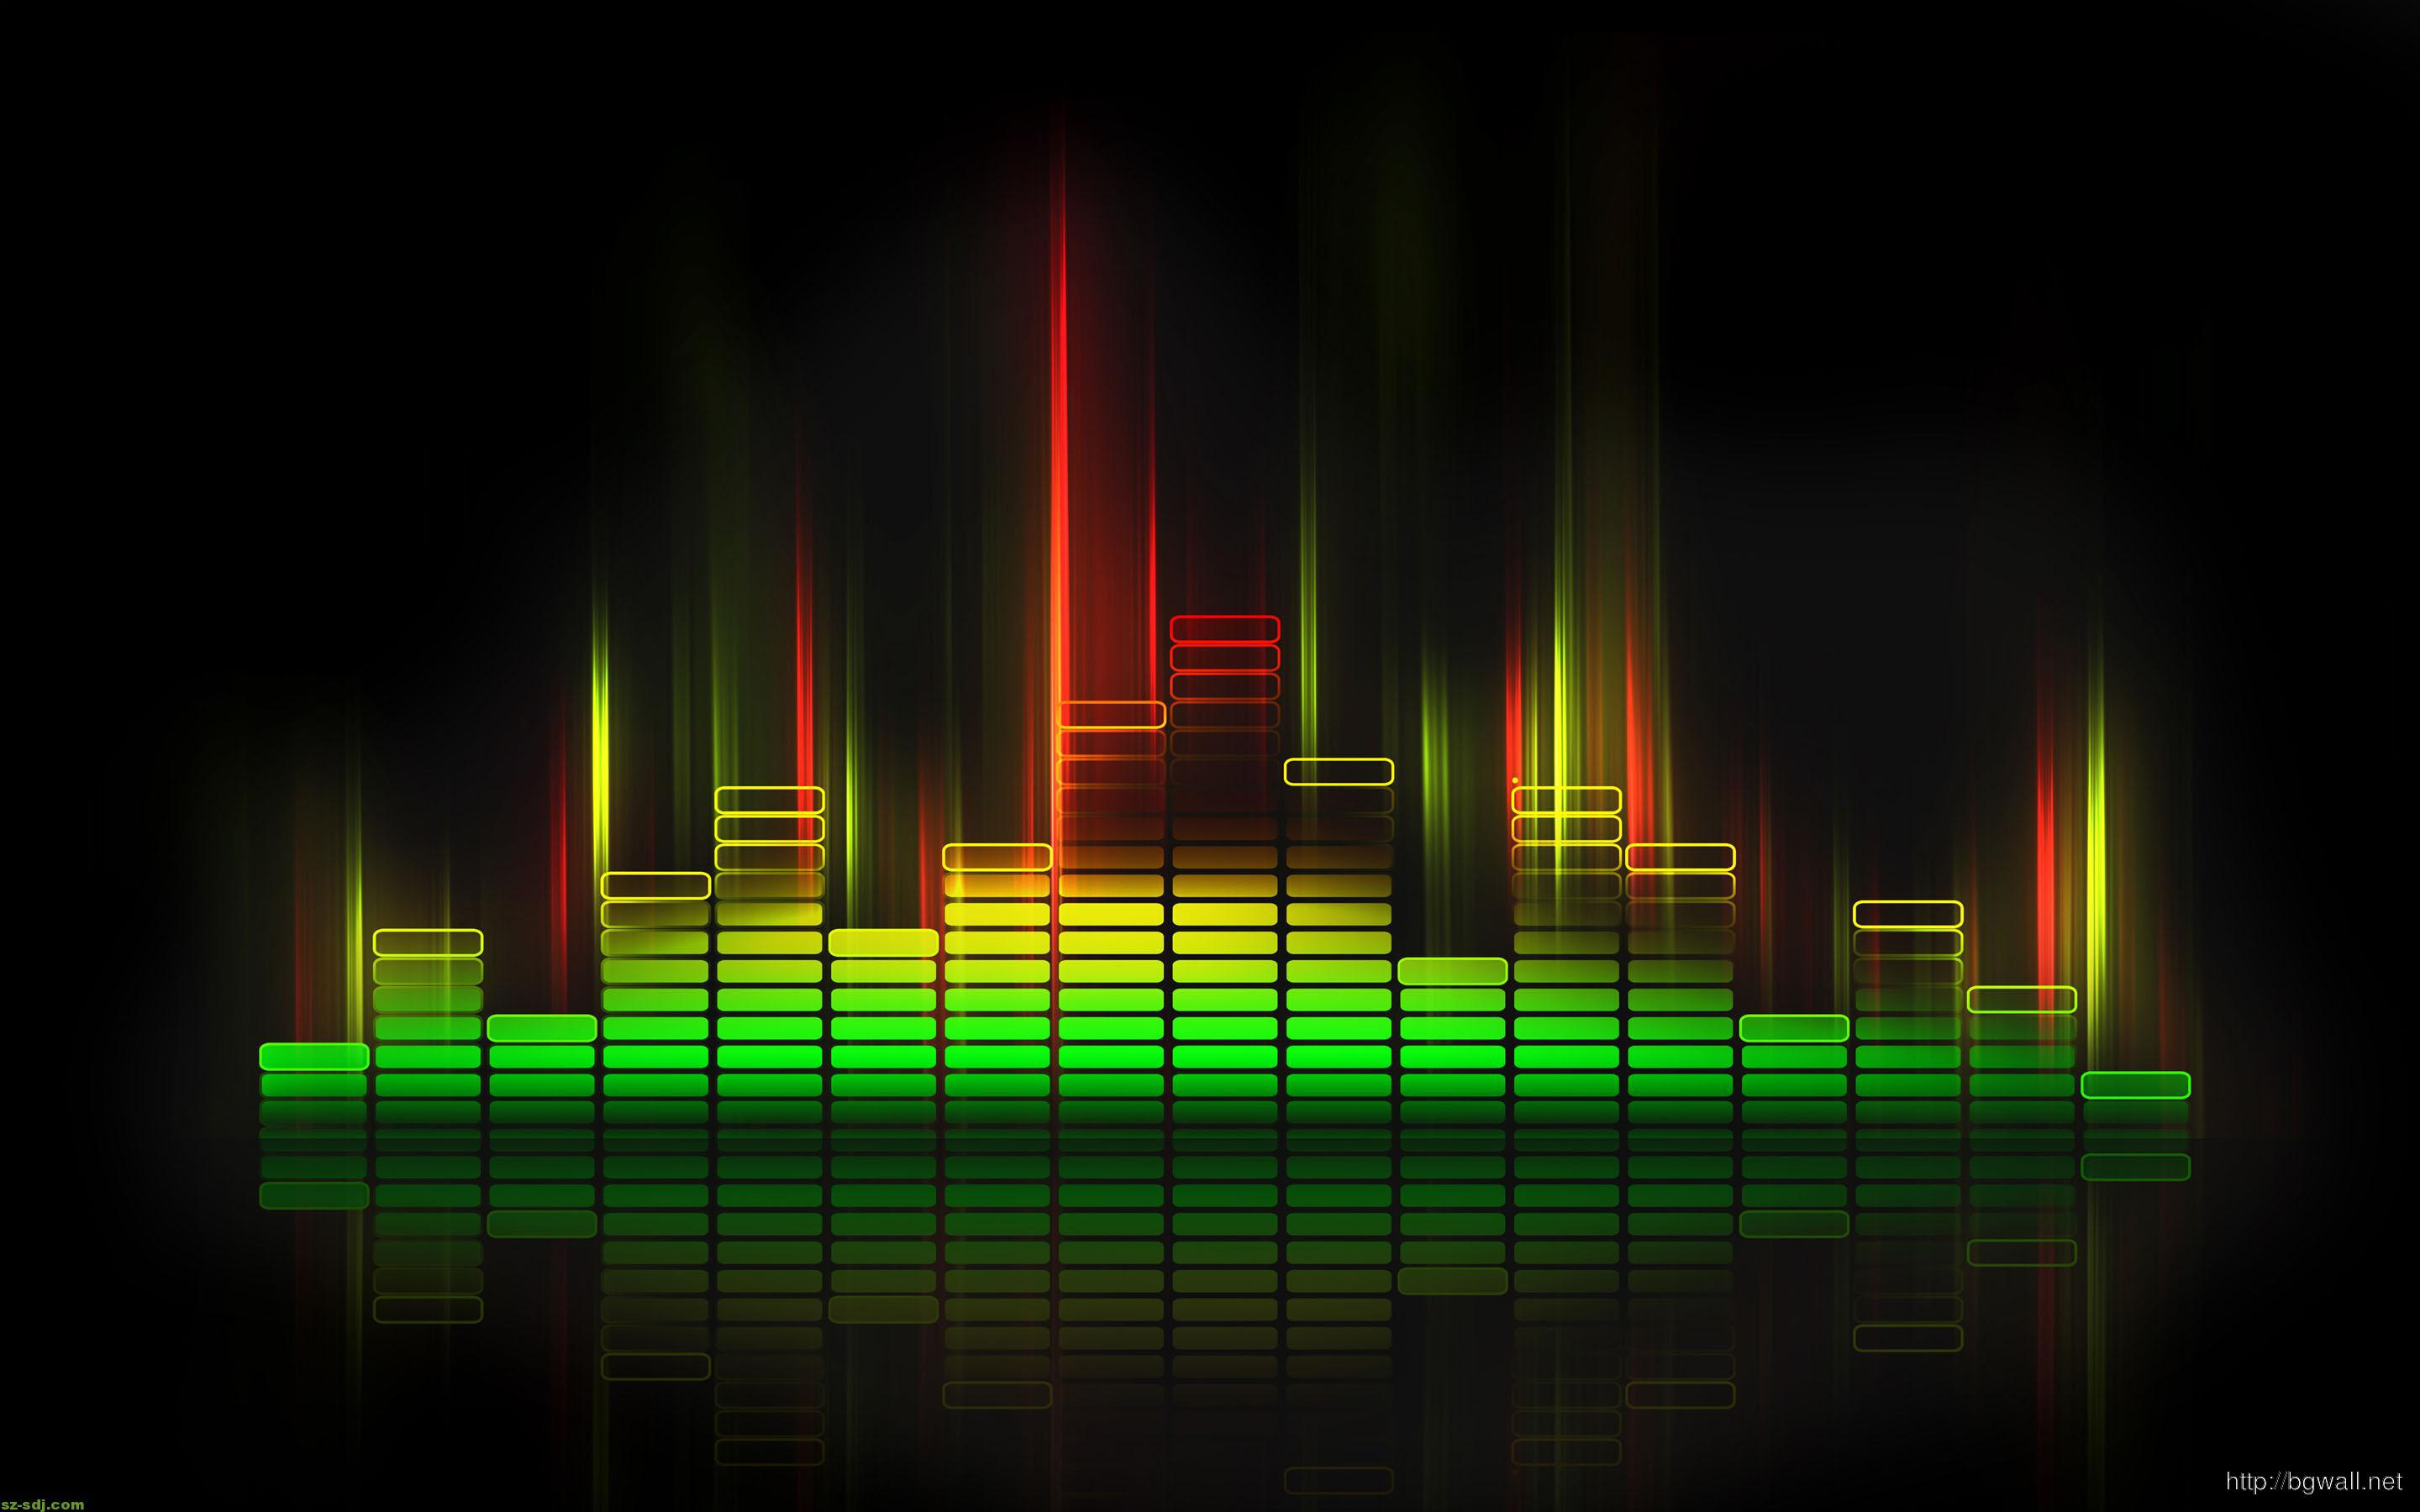 Music Equalizer Wallpaper: Cool Music Equalizer Desktop Wallpaper Hd